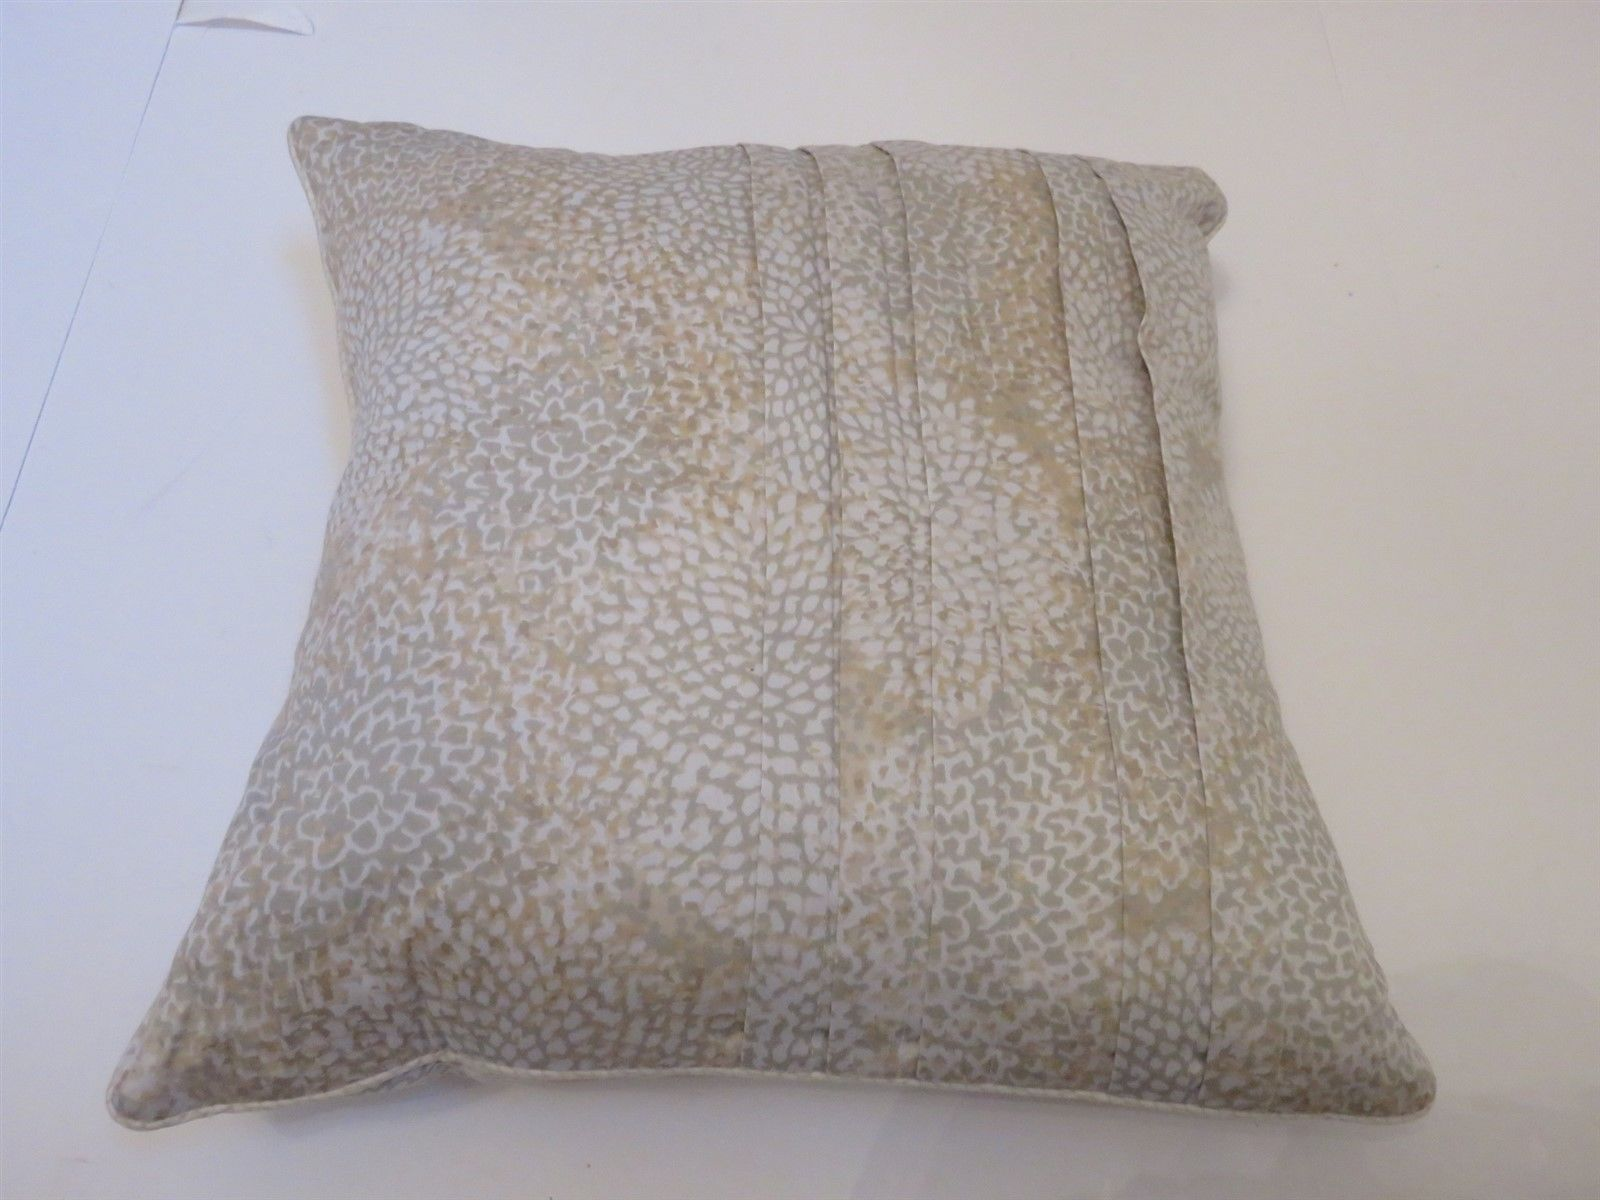 Primary image for Barbara Barry Bali Floral Deco Pillow NWT